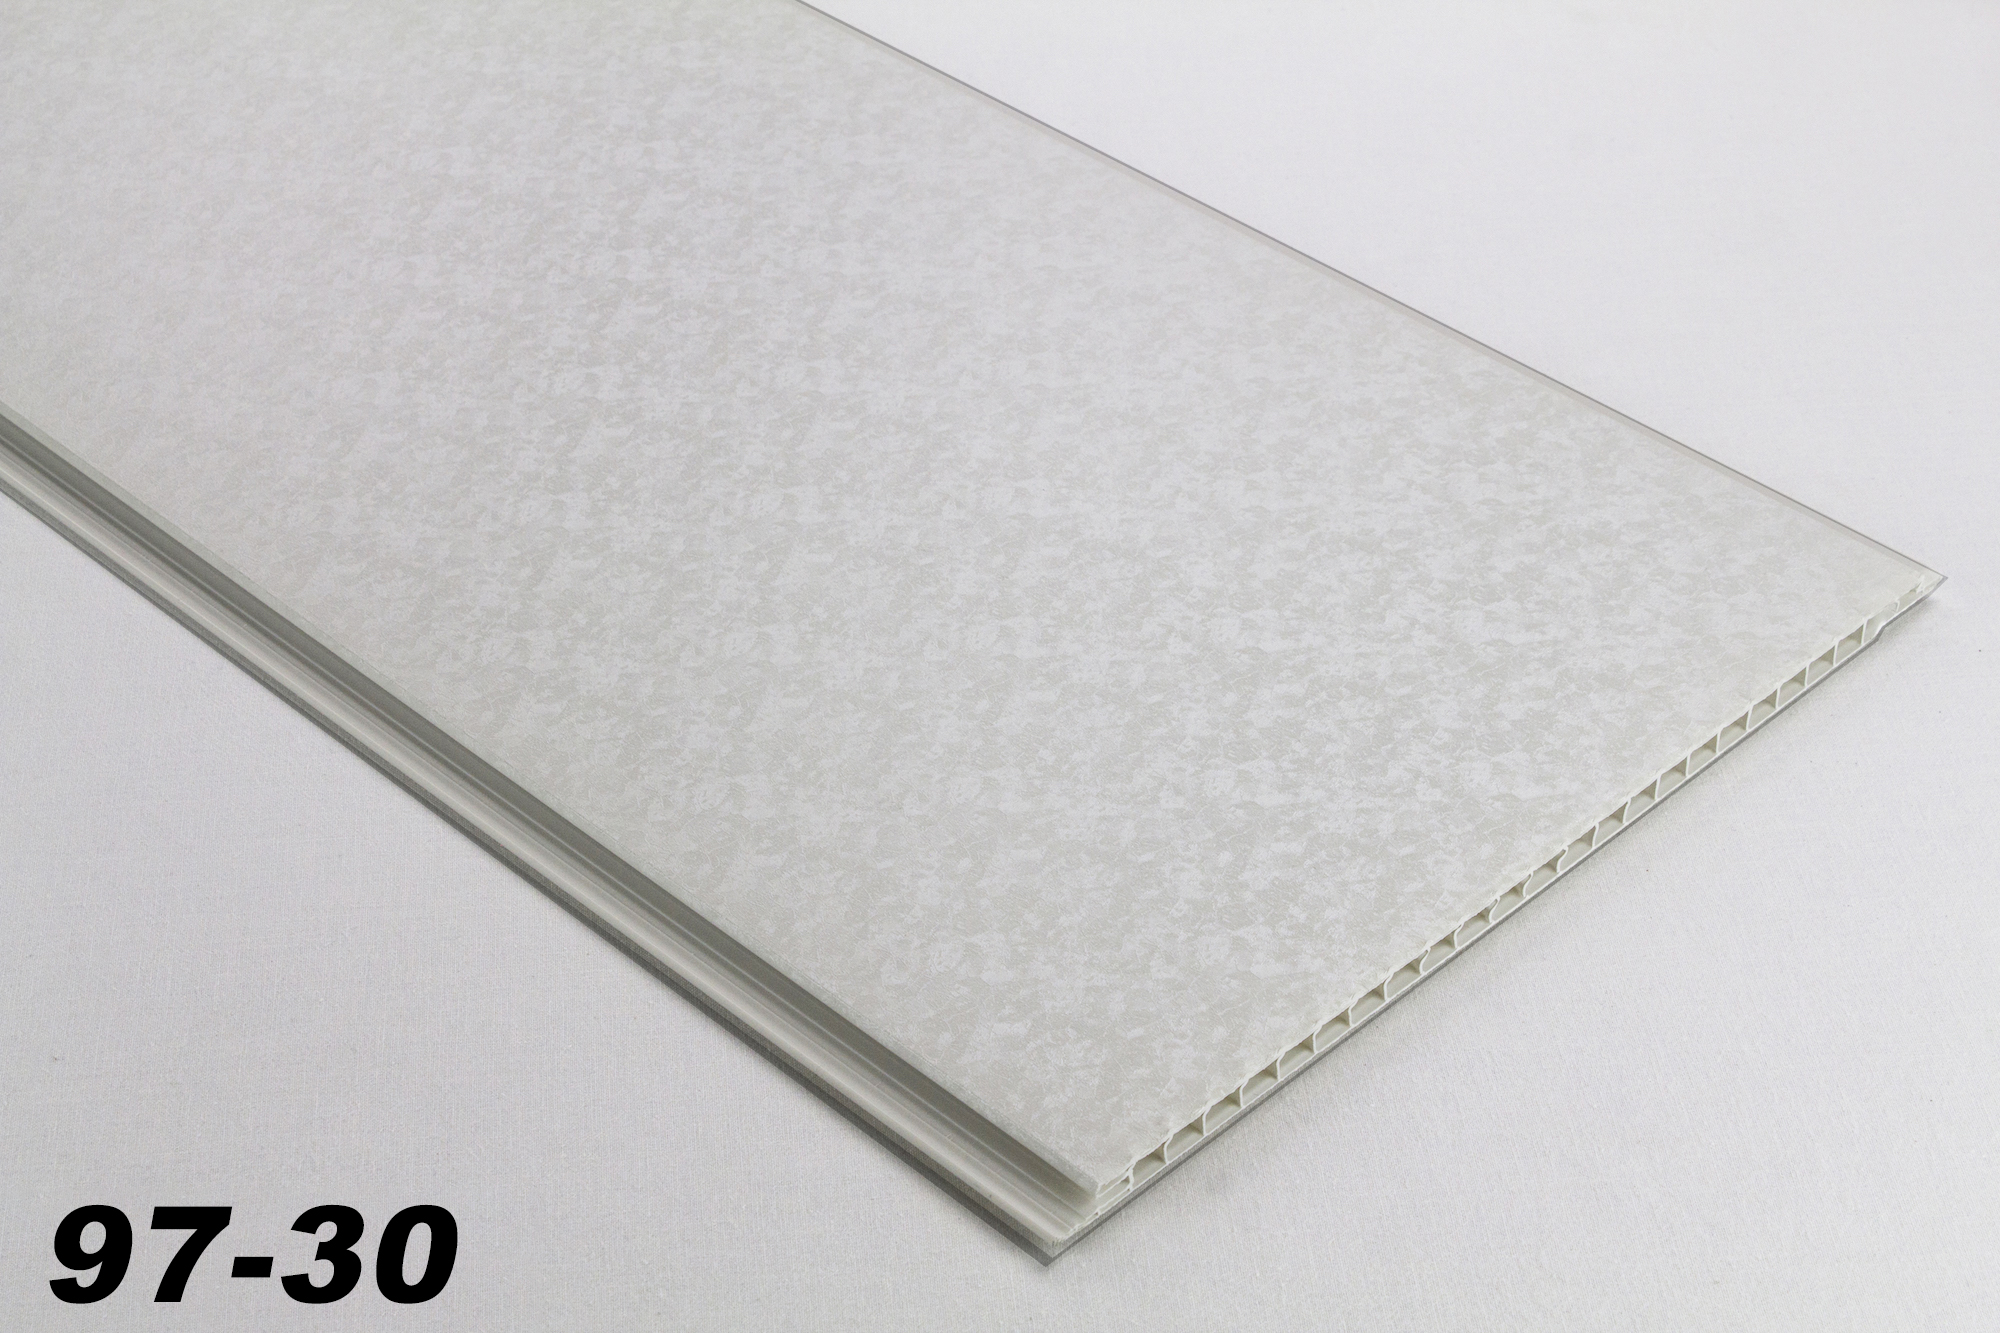 5 m2 pvc panel placas resistente al agua interior techo for Paneles de pvc para banos